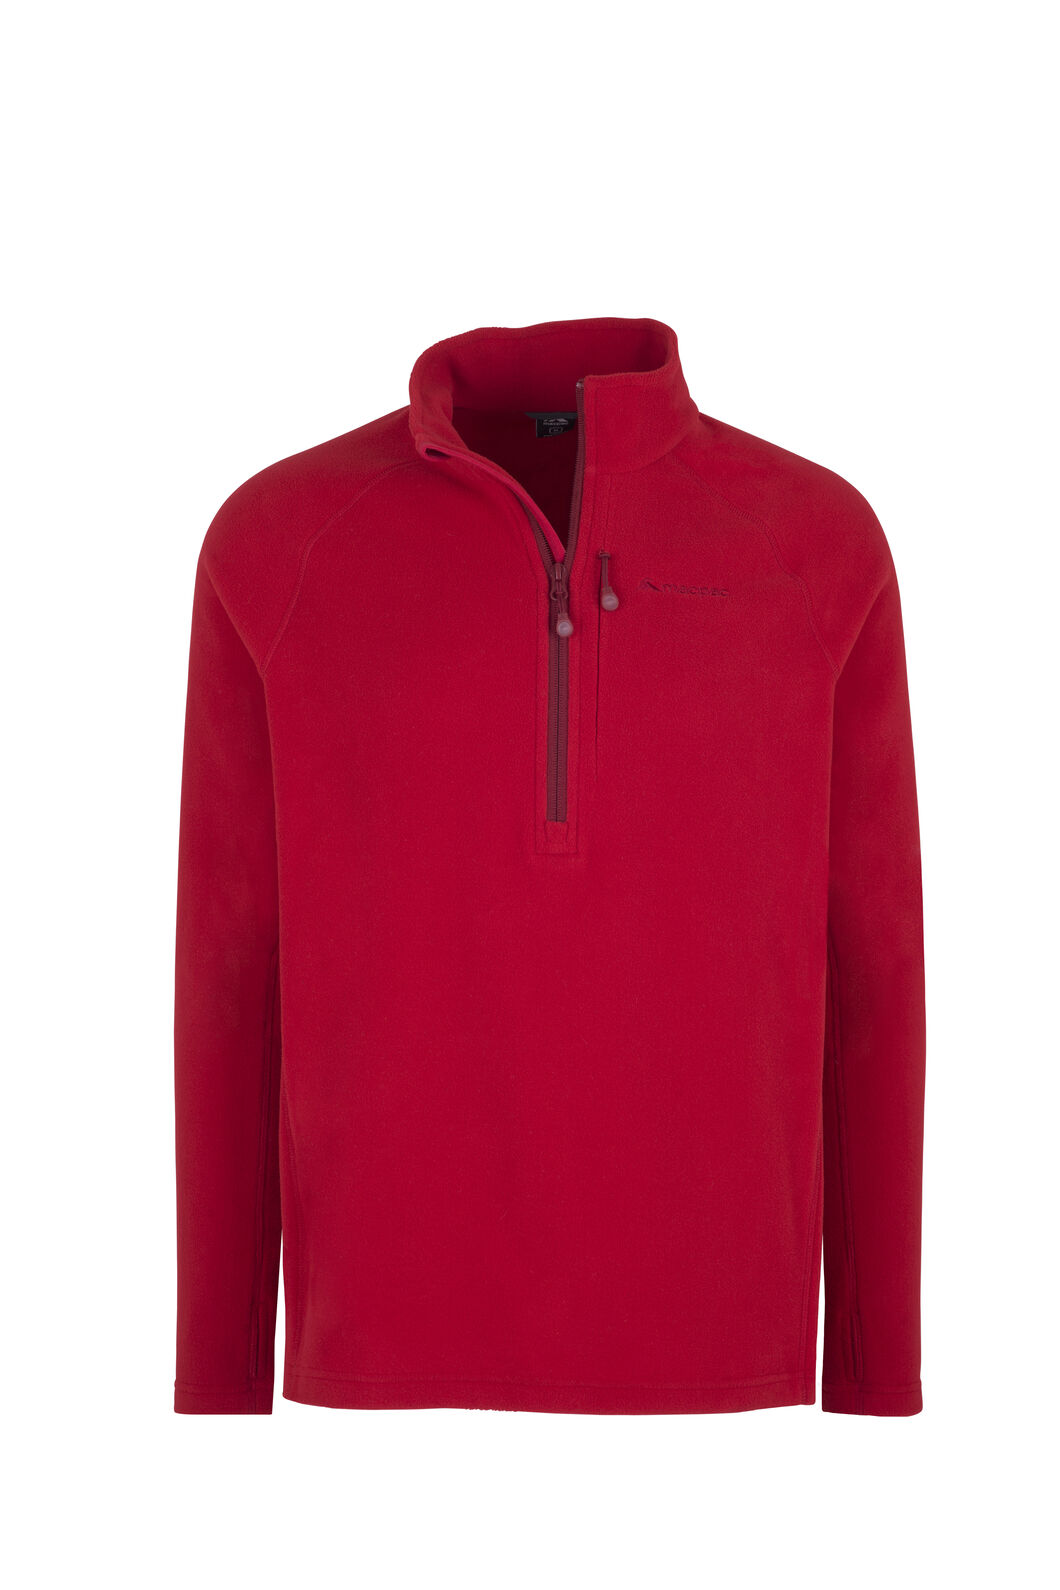 Macpac Tui Fleece Pullover - Men's, Haute Red, hi-res